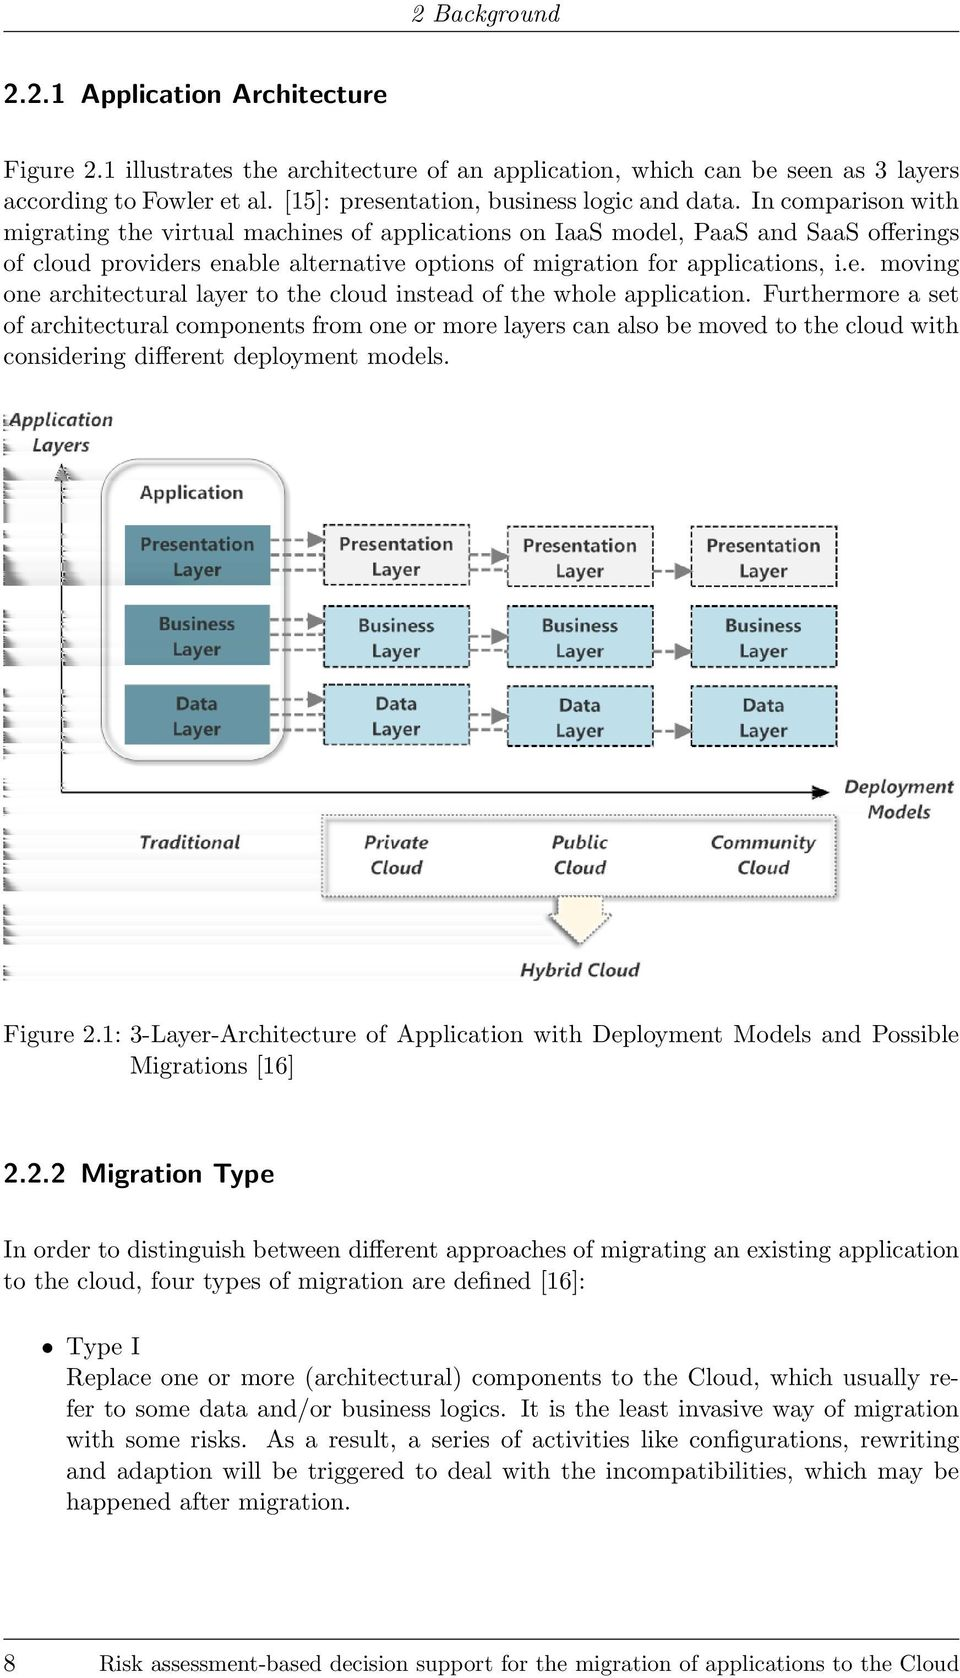 In comparison with migrating the virtual machines of applications on IaaS model, PaaS and SaaS offerings of cloud providers enable alternative options of migration for applications, i.e. moving one architectural layer to the cloud instead of the whole application.